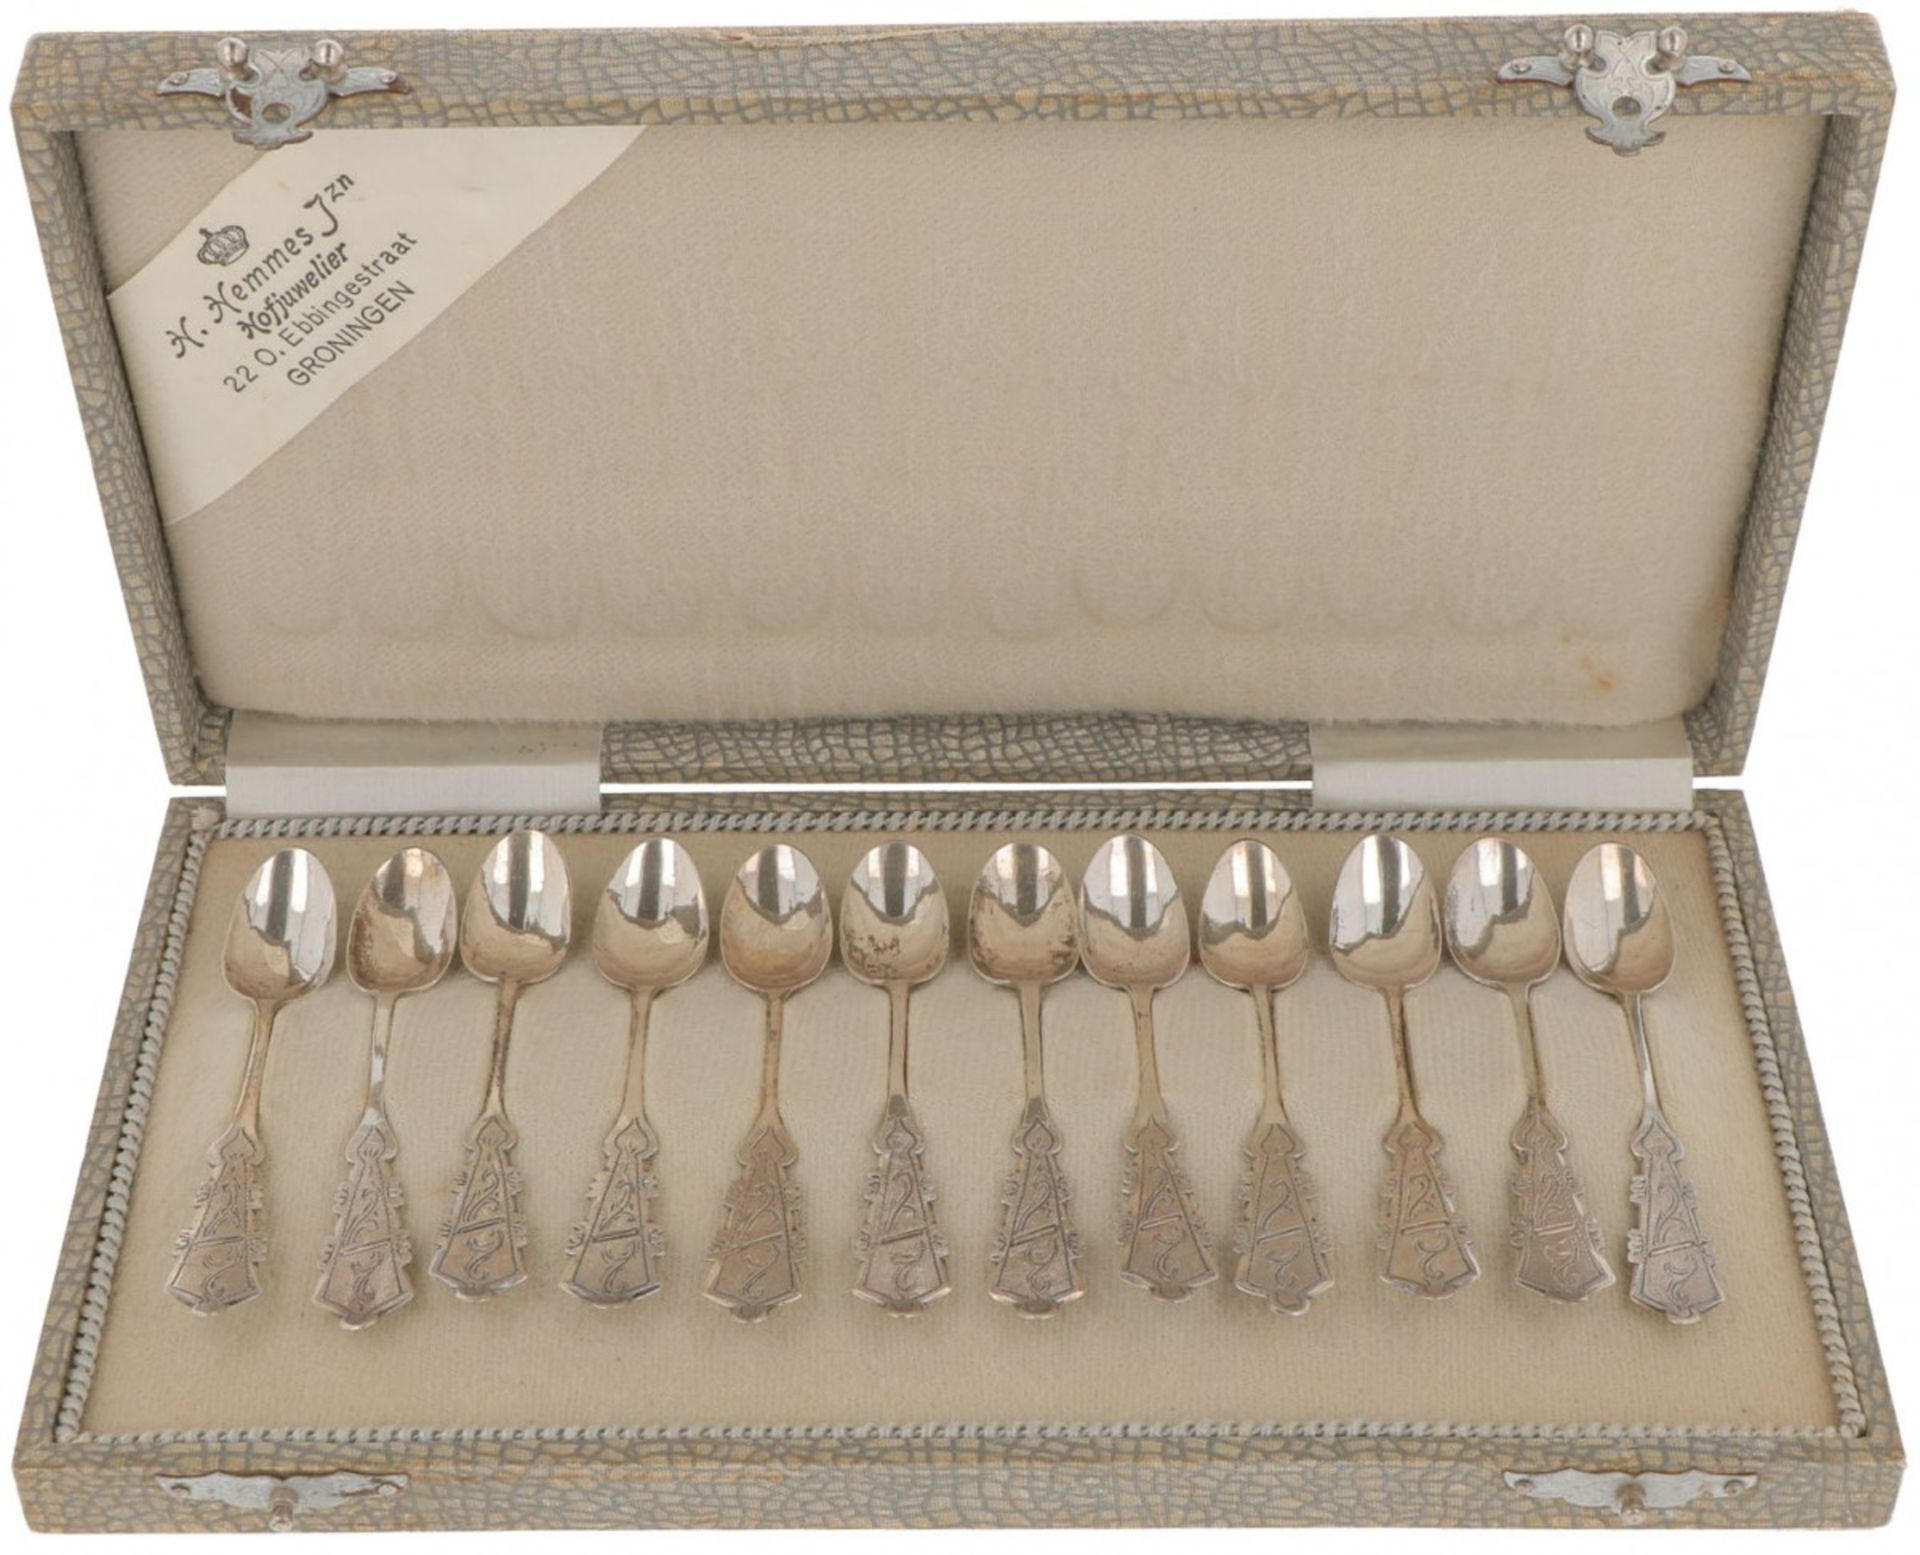 (12) piece set of silver coffee spoons.